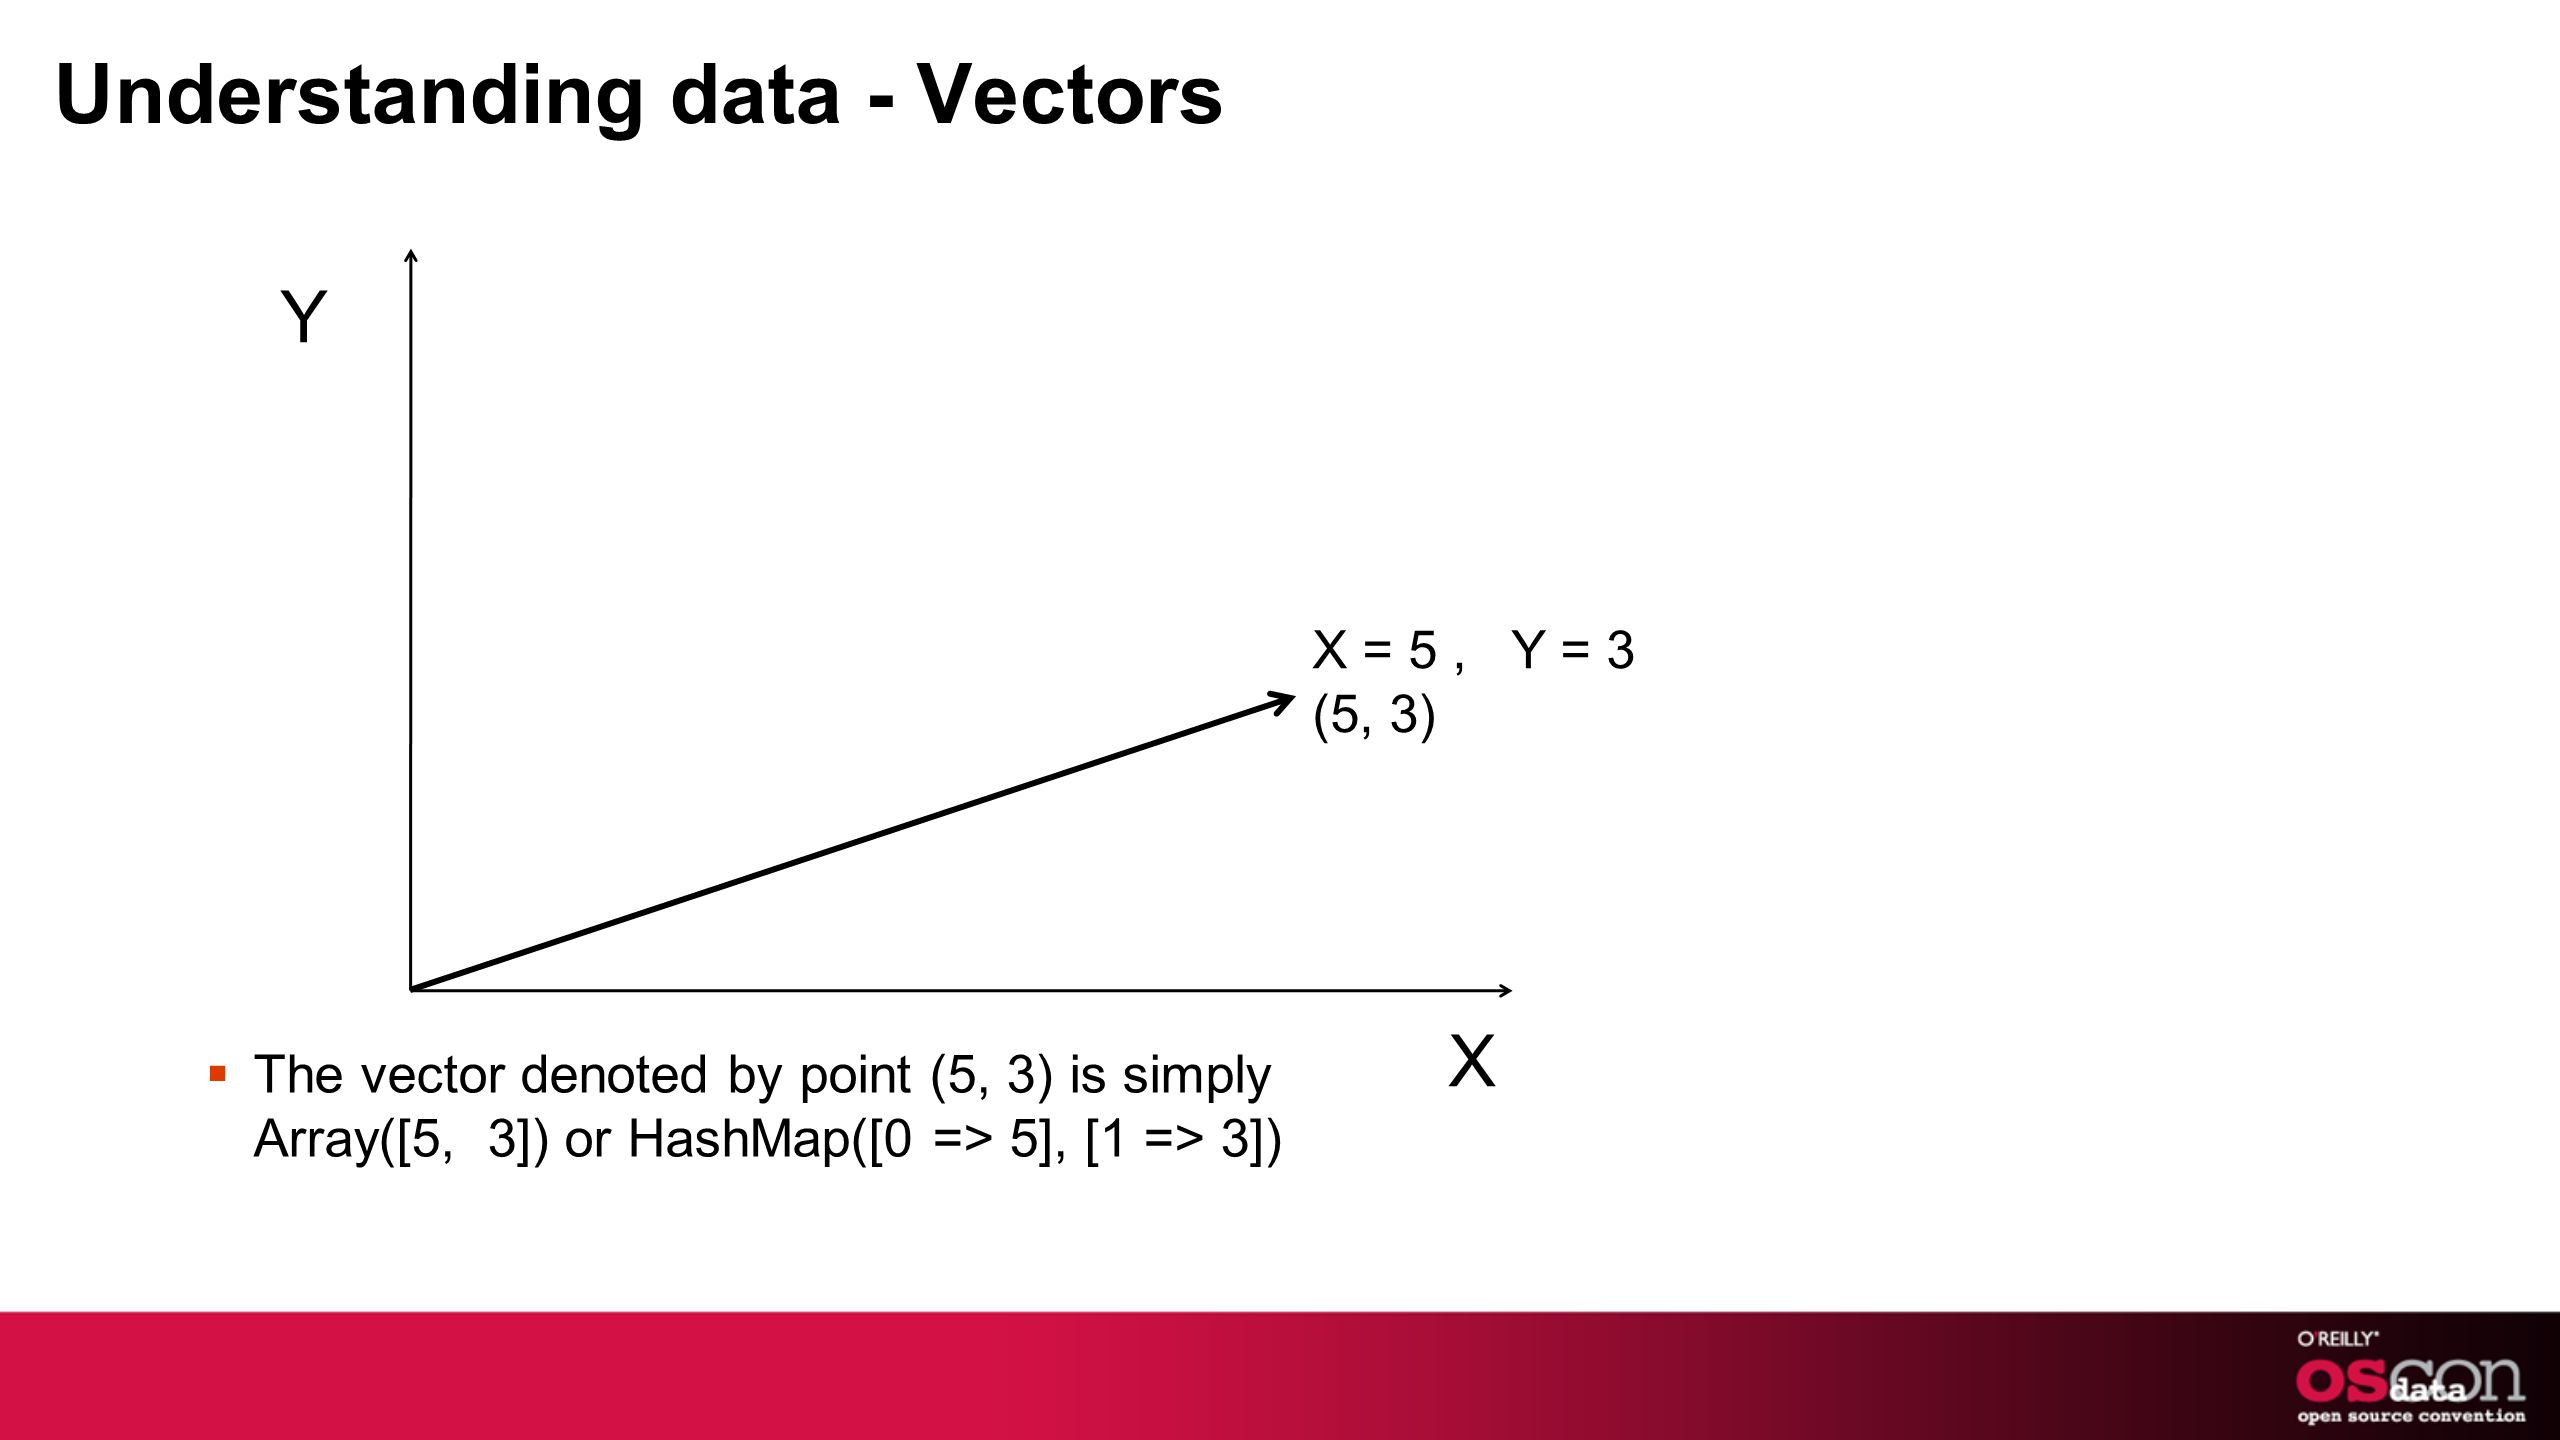 Understanding data - Vectors X = 5, Y = 3 (5, 3) The vector denoted by point (5, 3) is simply Array([5, 3]) or HashMap([0 => 5], [1 => 3]) Y X